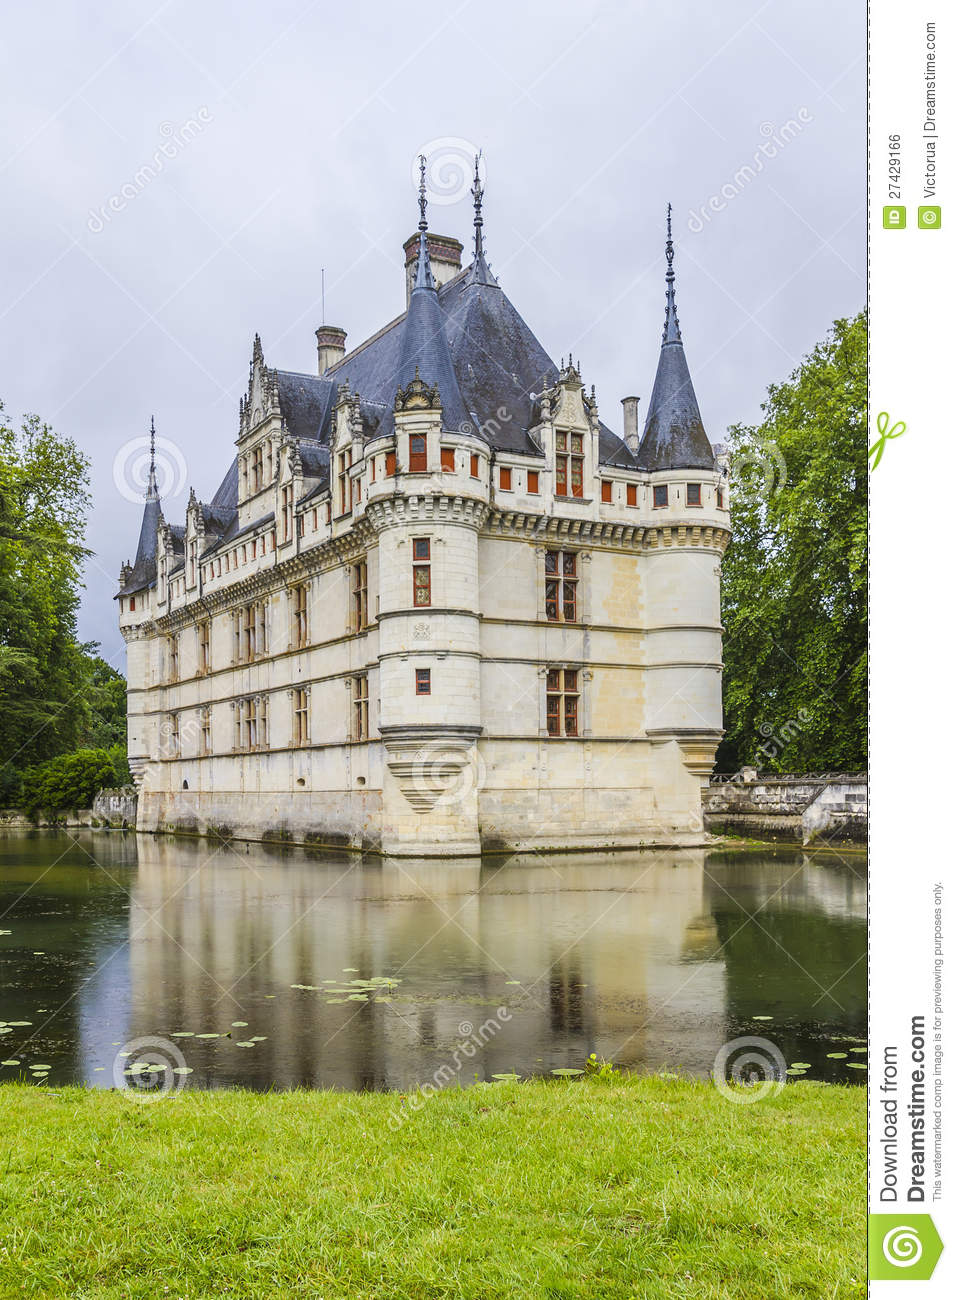 chateau azay le rideau earliest french chateaux stock photo image 27429166. Black Bedroom Furniture Sets. Home Design Ideas